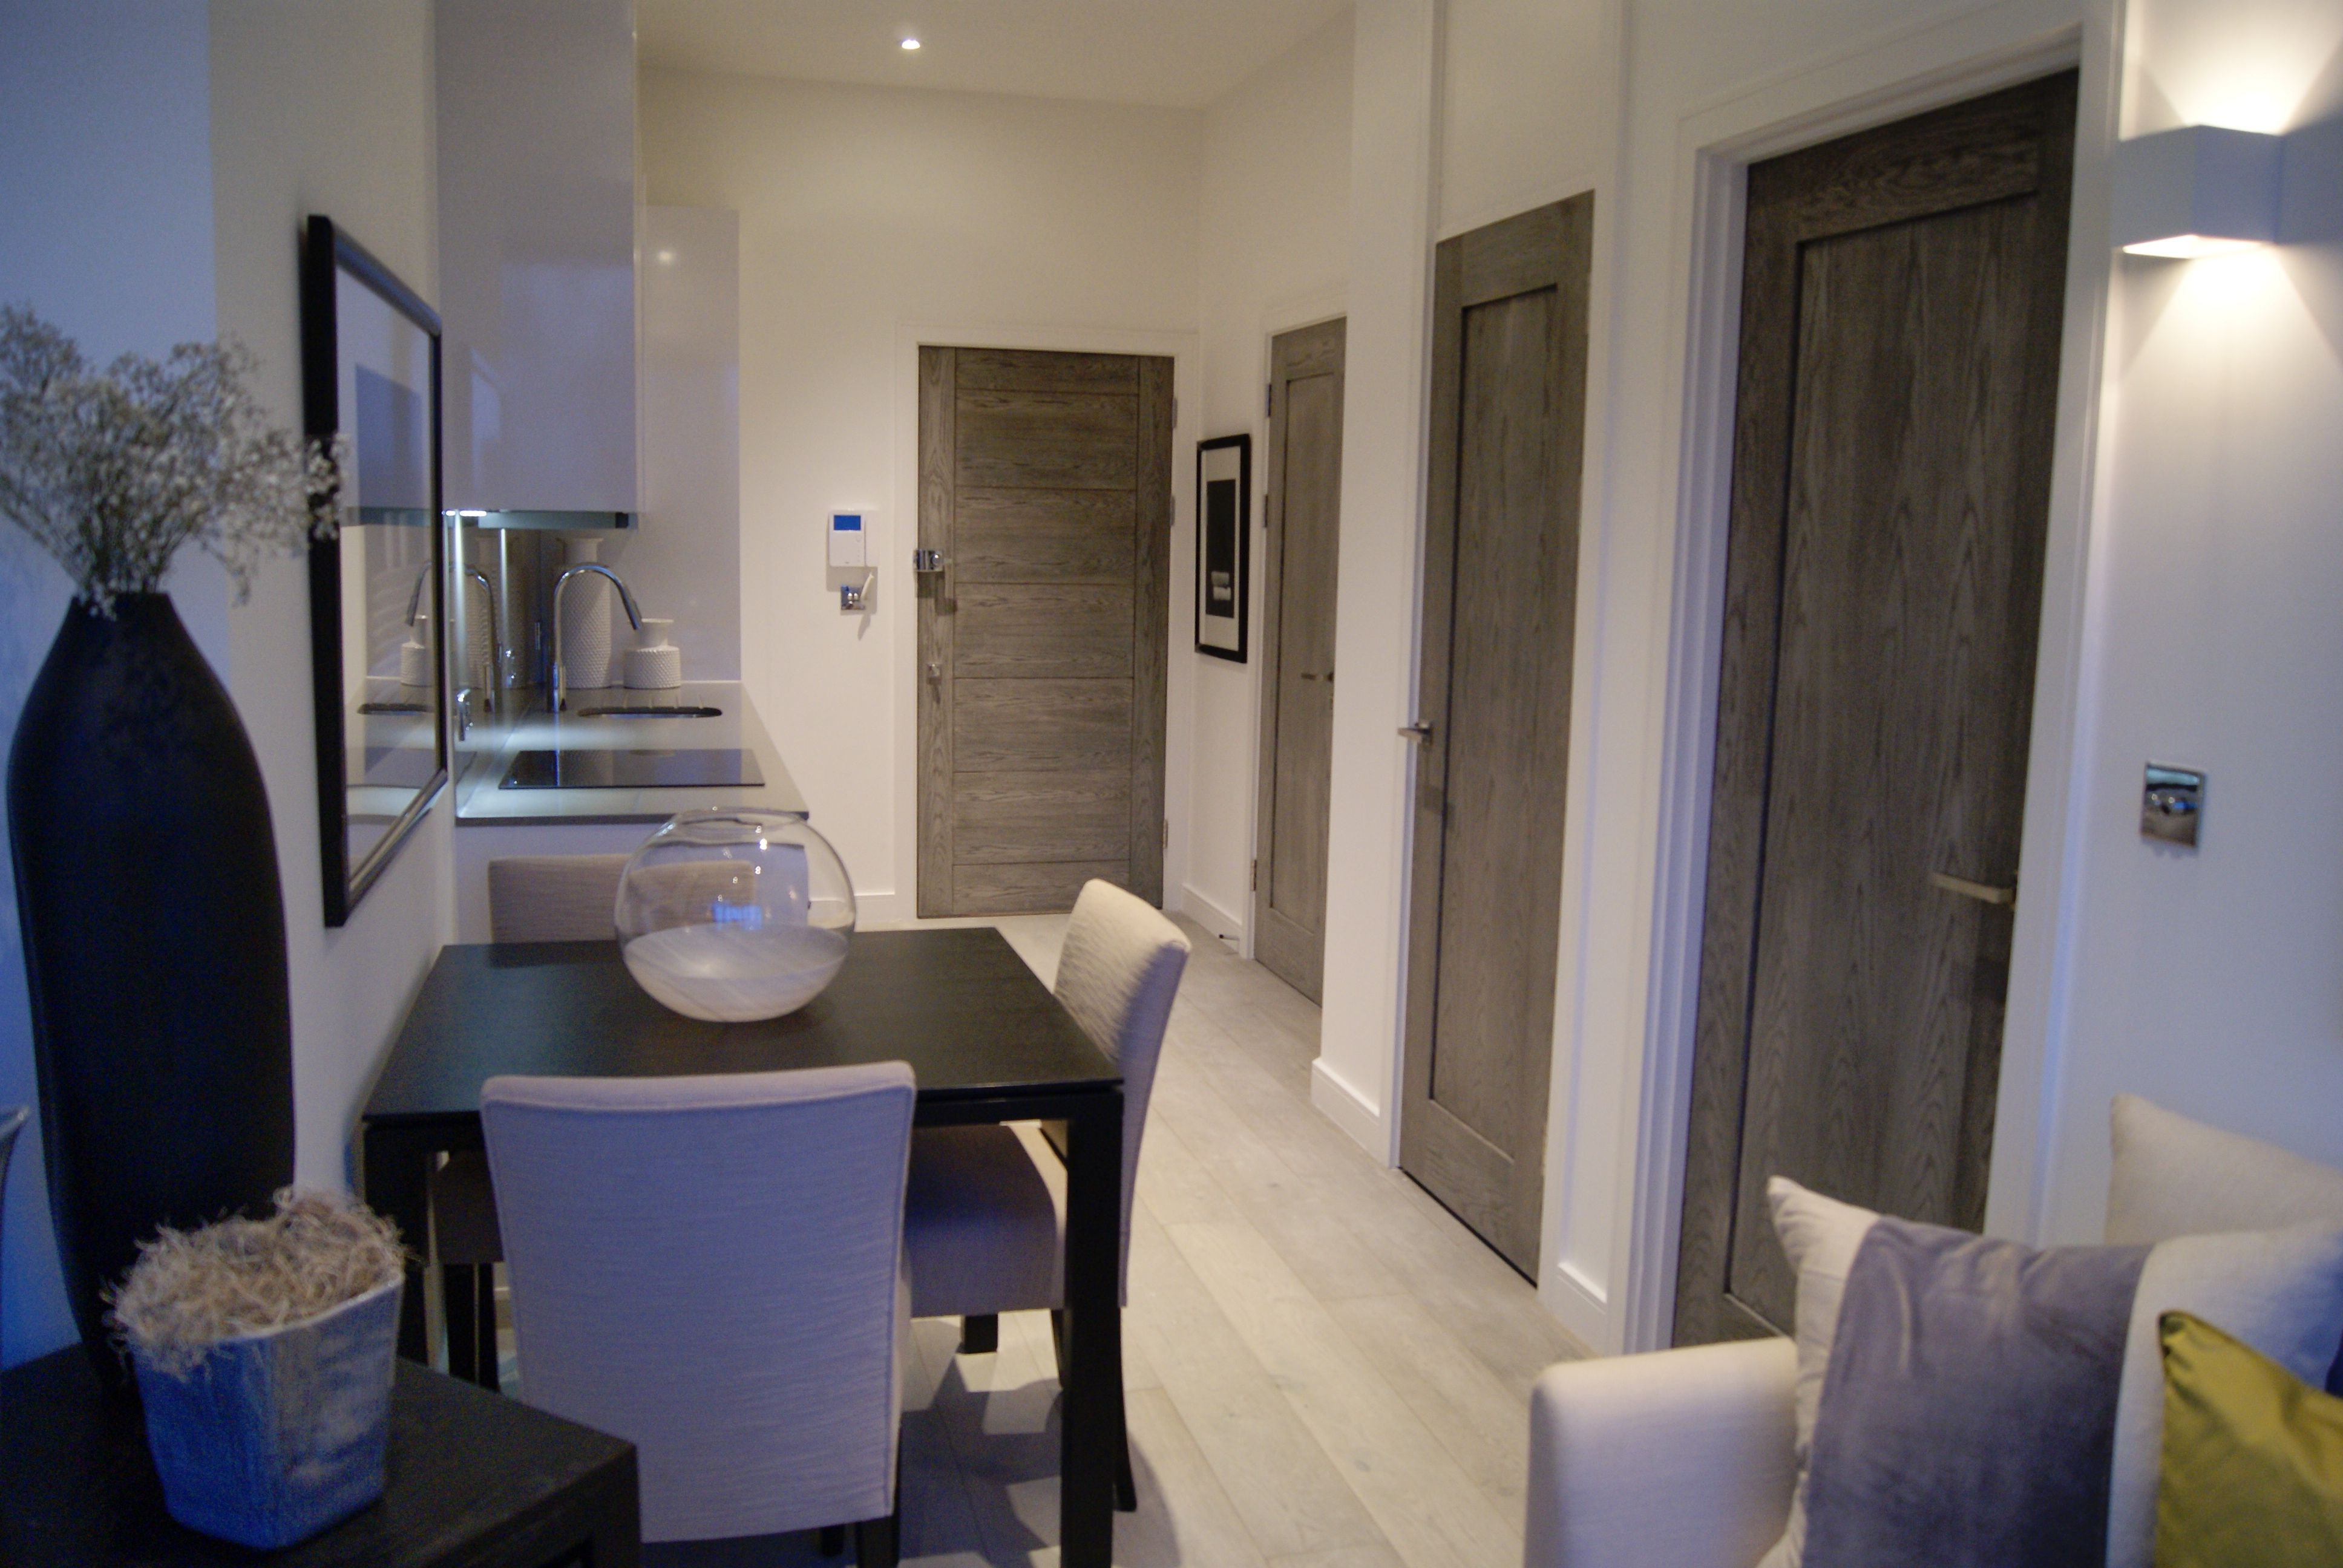 THE VERONA APARTMENTS SLOUGH BY KELLY HOPPEN. Oak 190mmW and 830 doors throughout the & THE VERONA APARTMENTS SLOUGH BY KELLY HOPPEN. Oak 190mmW and 830 ... pezcame.com